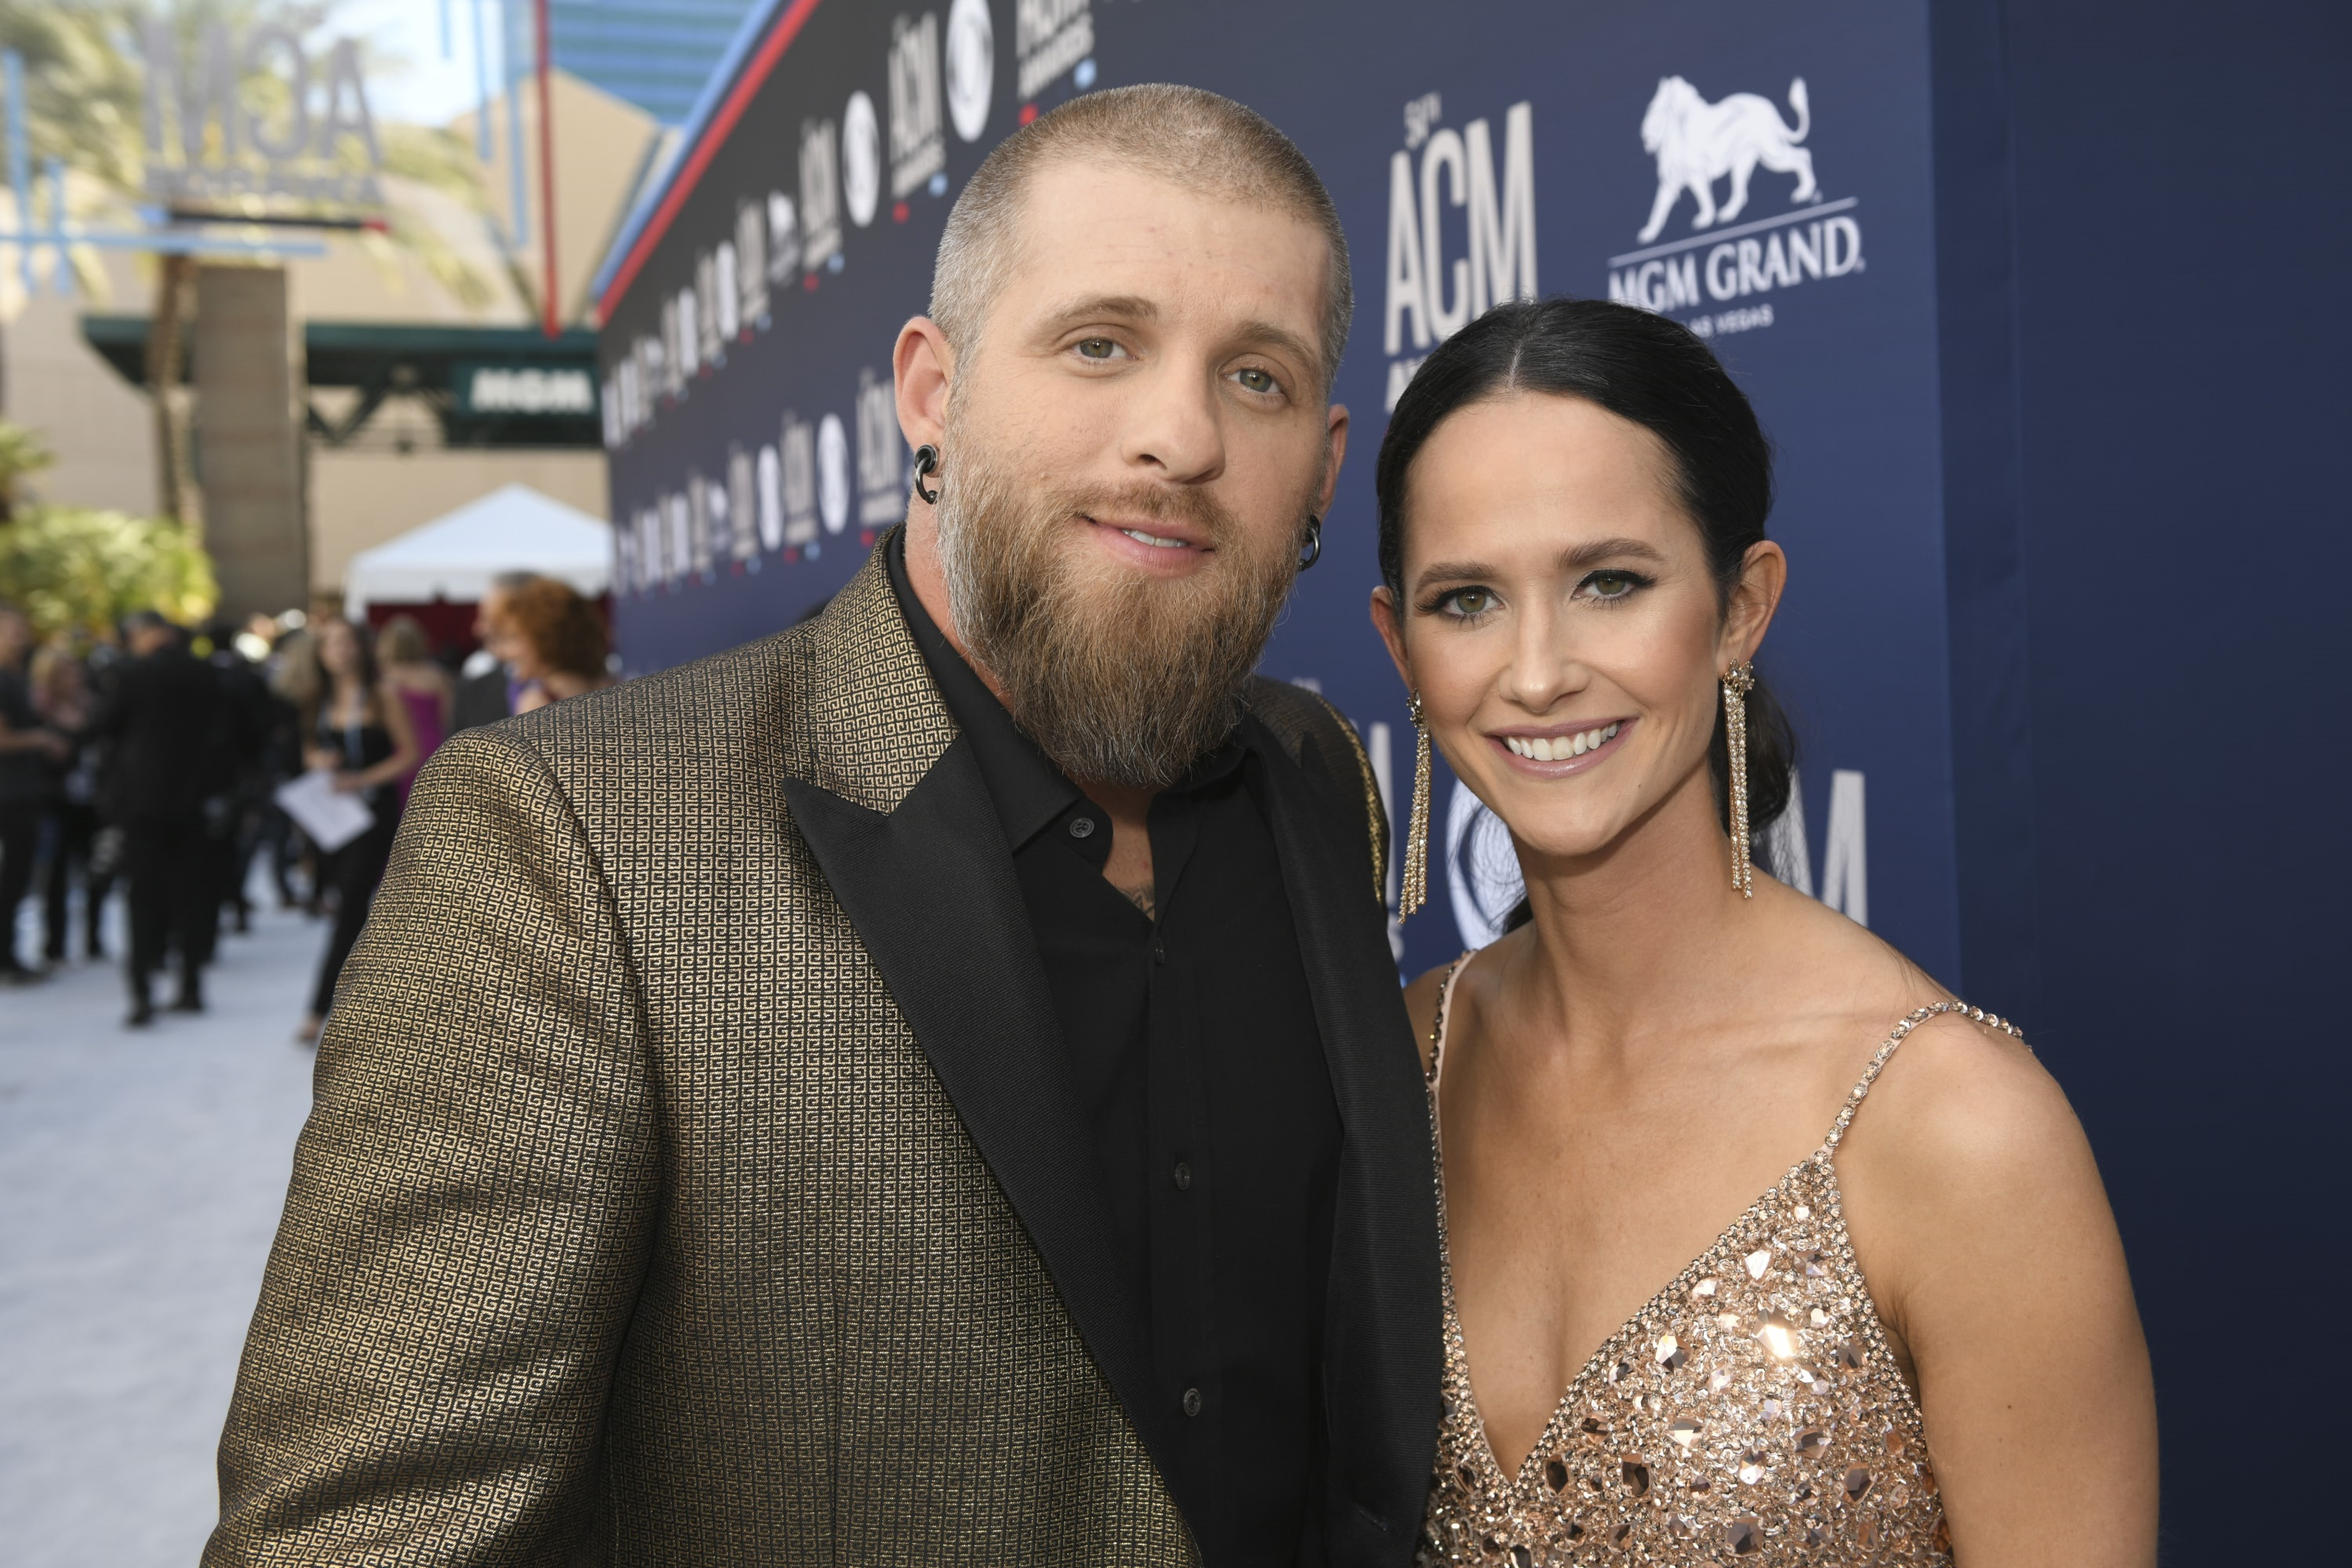 Brantley Gilbert and Amber Cochran during the 54TH ACADEMY OF COUNTRY MUSIC AWARDS, to broadcast LIVE from MGM Grand Garden Arena in Las Vegas Sunday, April 7, 2019 (8:00-11:00 PM, ET/delayed PT) on the CBS Television Network. Photo: Sam Morris/CBS ©2019 CBS Broadcasting, Inc. All Rights Reserved